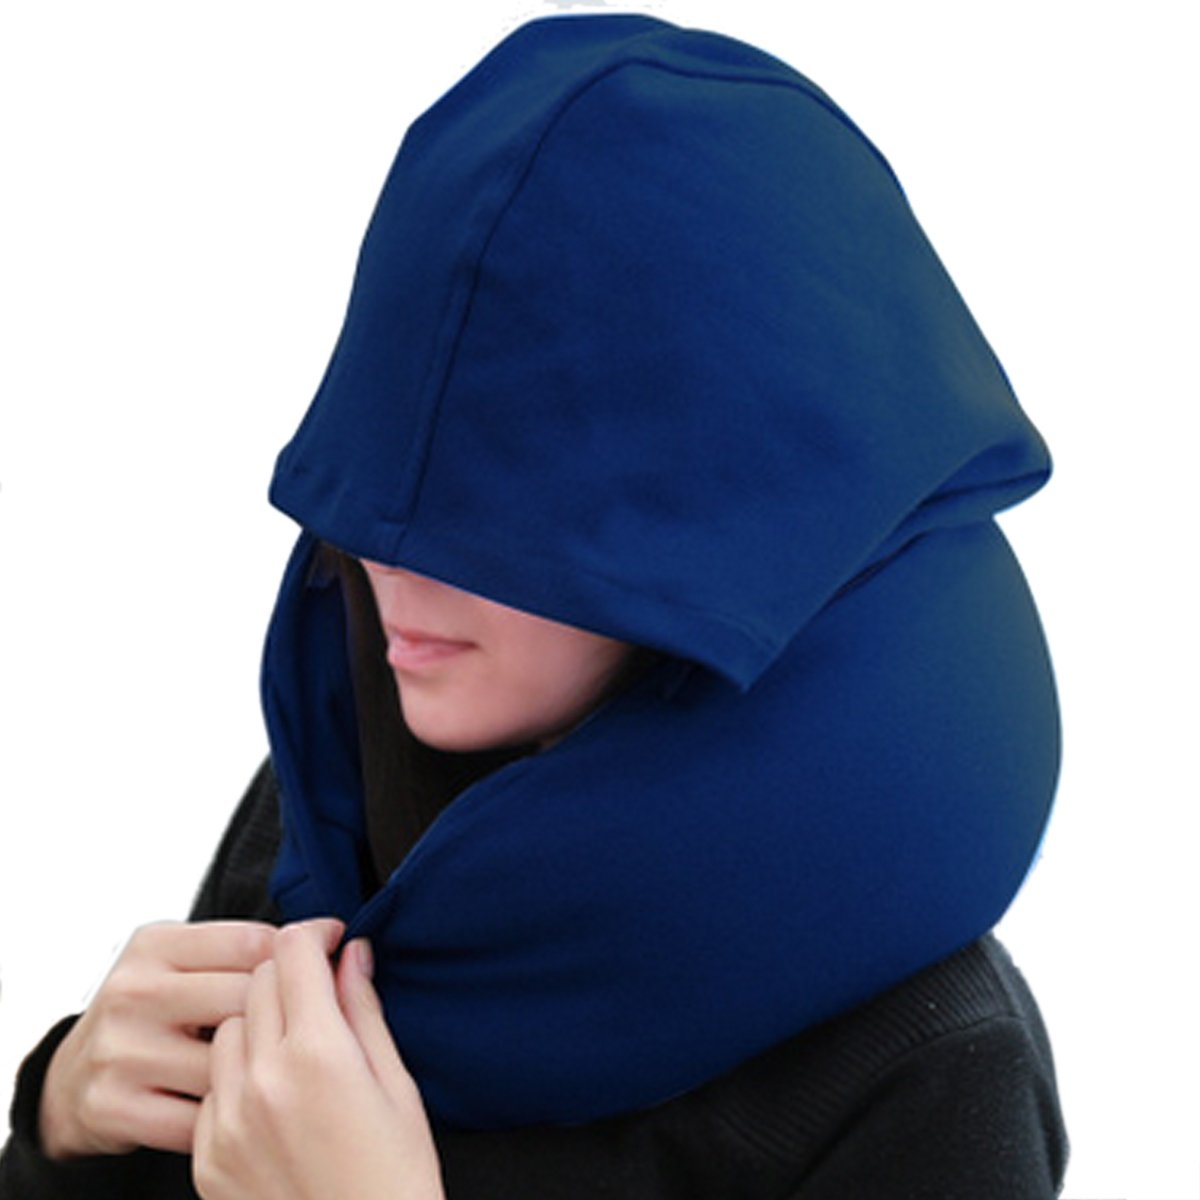 Travel Hoodie Neck Pillows with Cap U-shape Pillow for Napping in the car/airplane/bus/train/lunch break